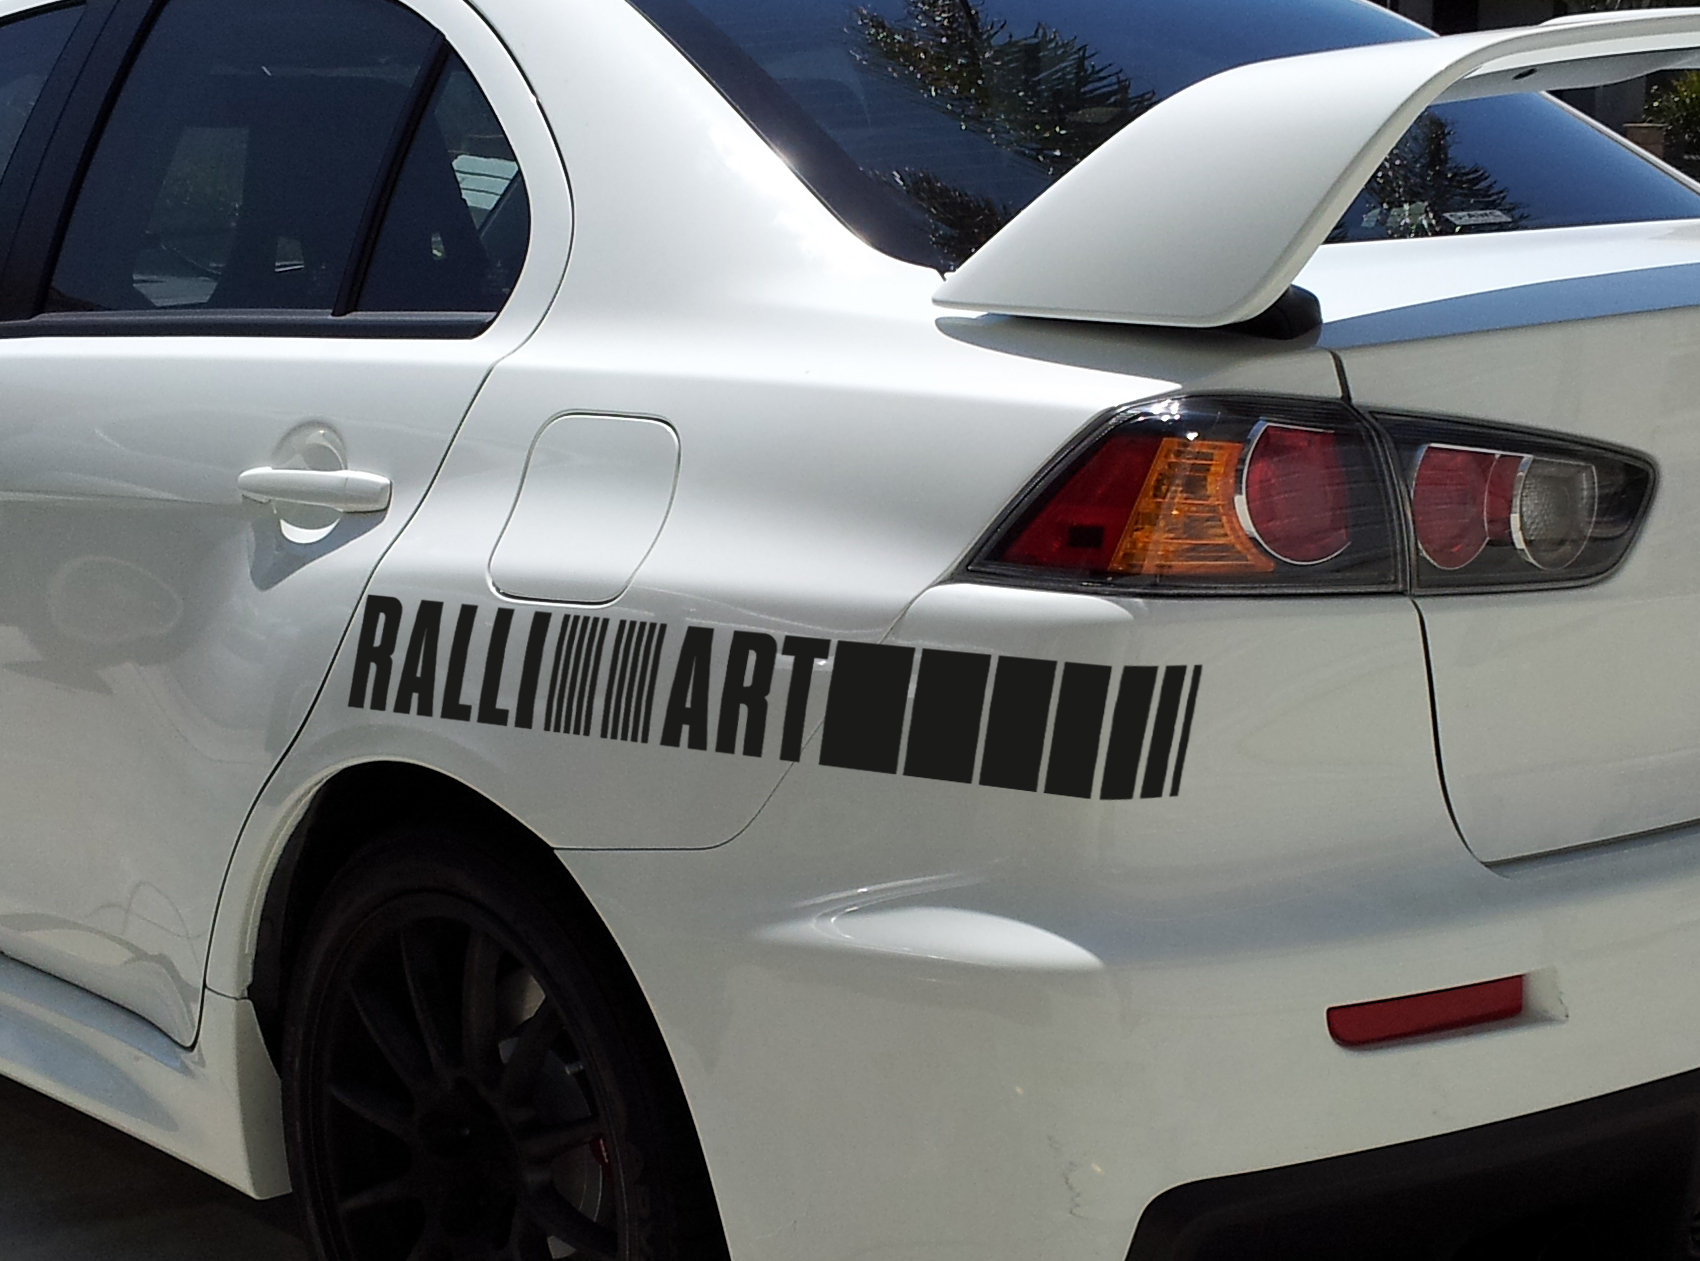 Product 2x Ralli Art Rally Racing Sports 4x4 Car Vinyl Sticker